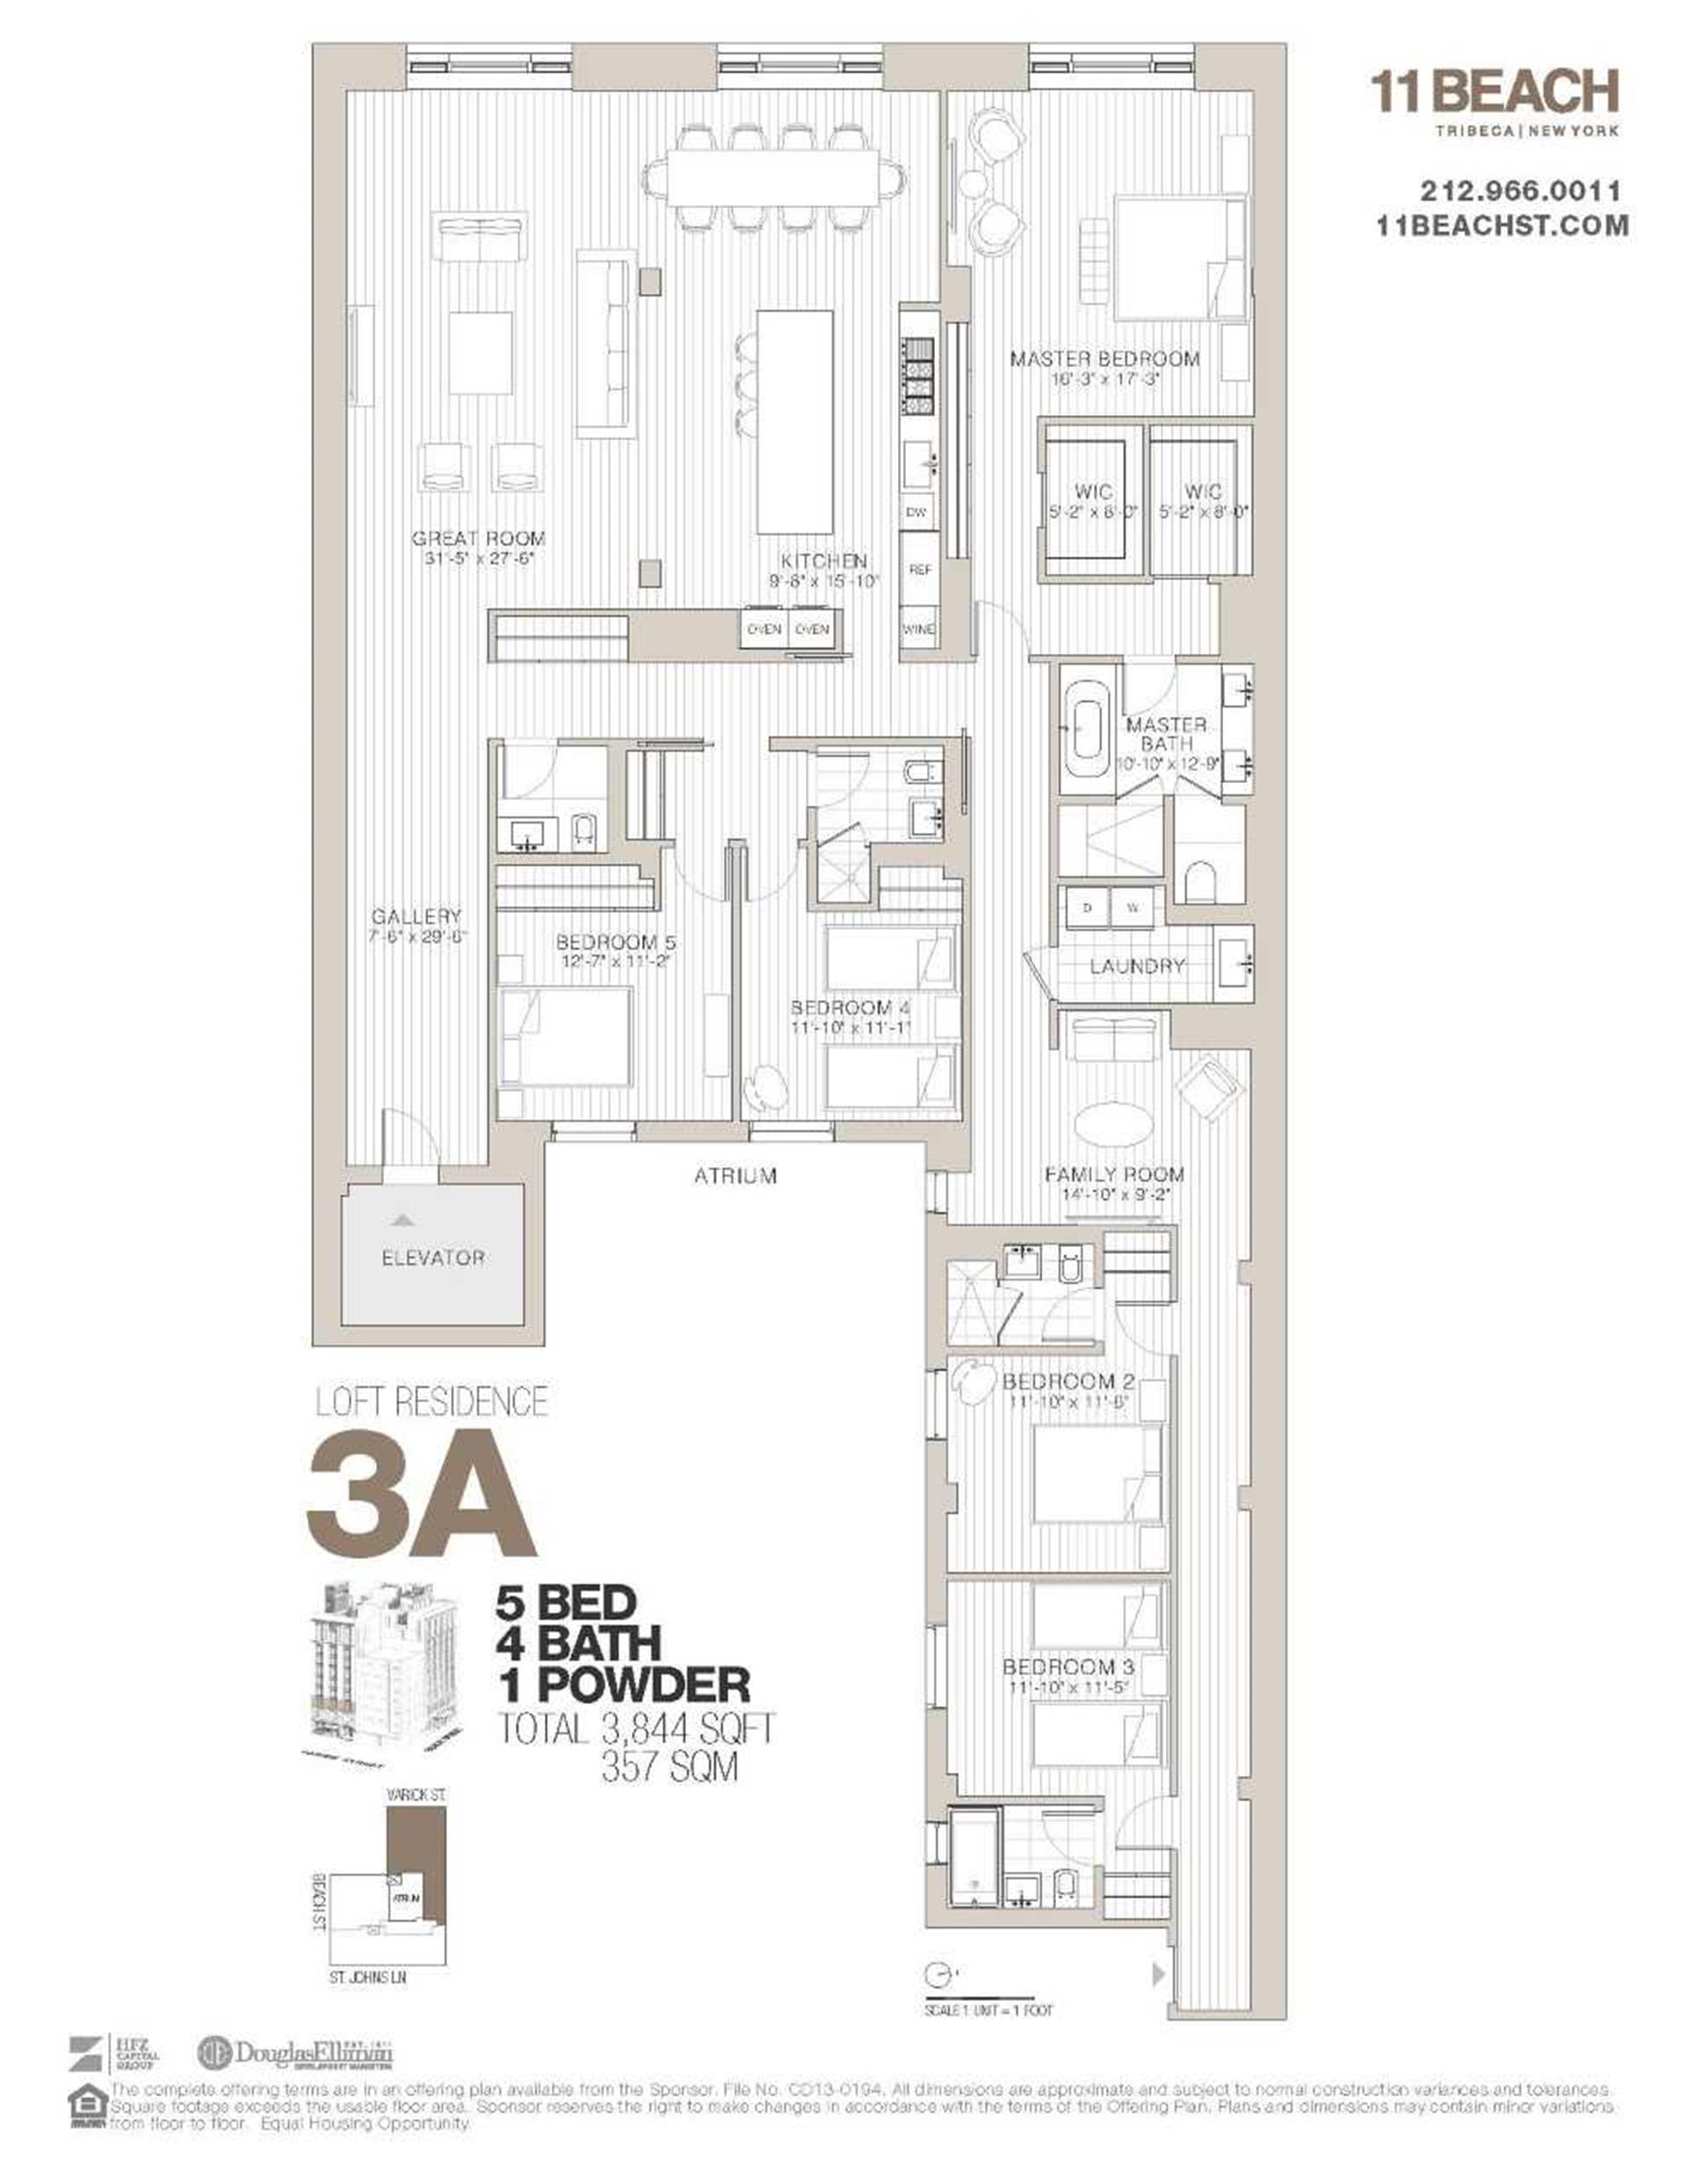 Floor plan of 11 Beach St, 3A - TriBeCa, New York